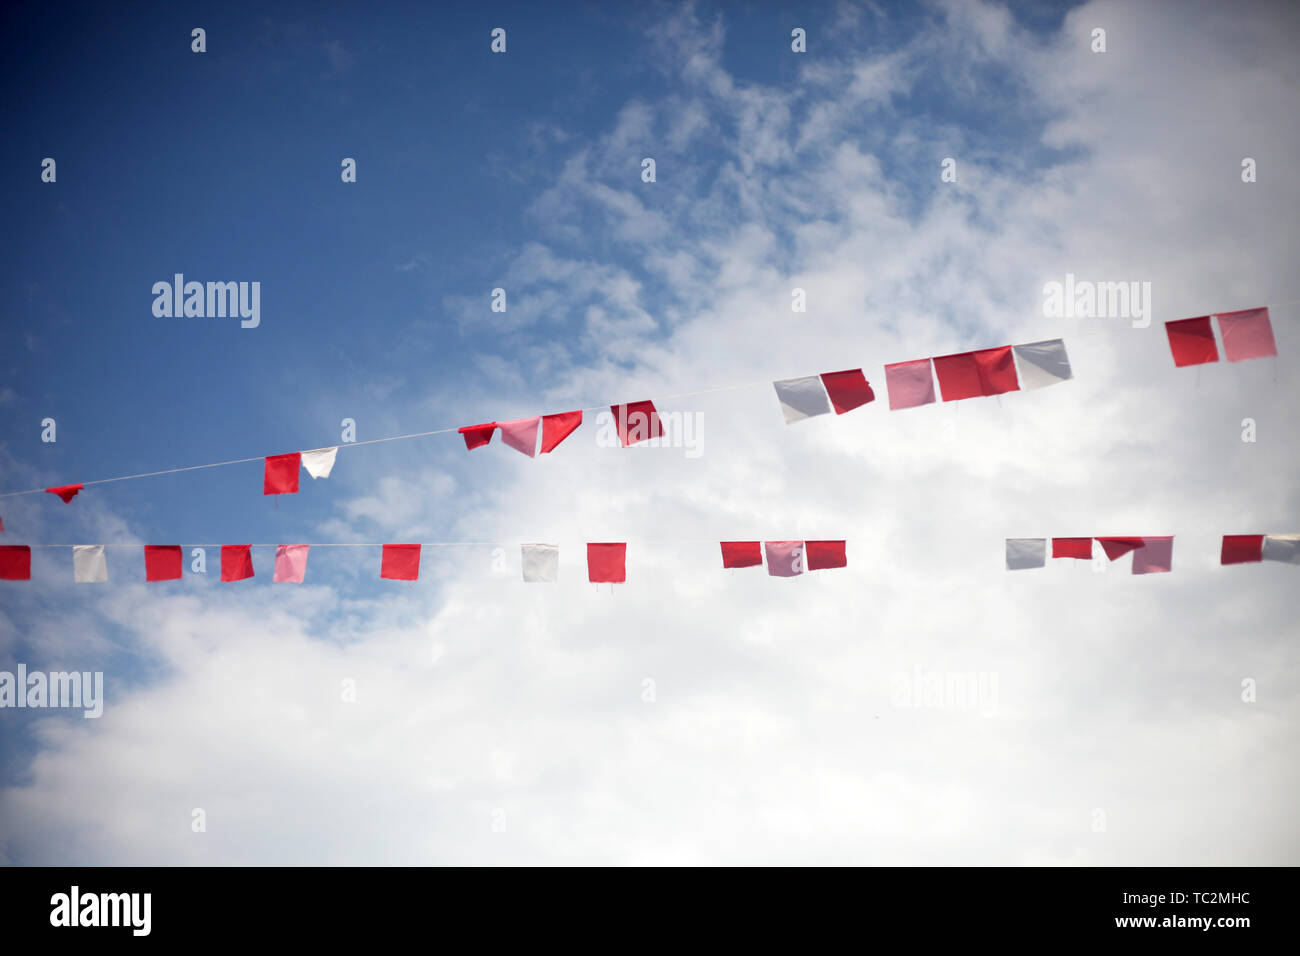 Colorful flags against blue sky with white clouds. Summer celebration, party or festival concept. - Stock Image